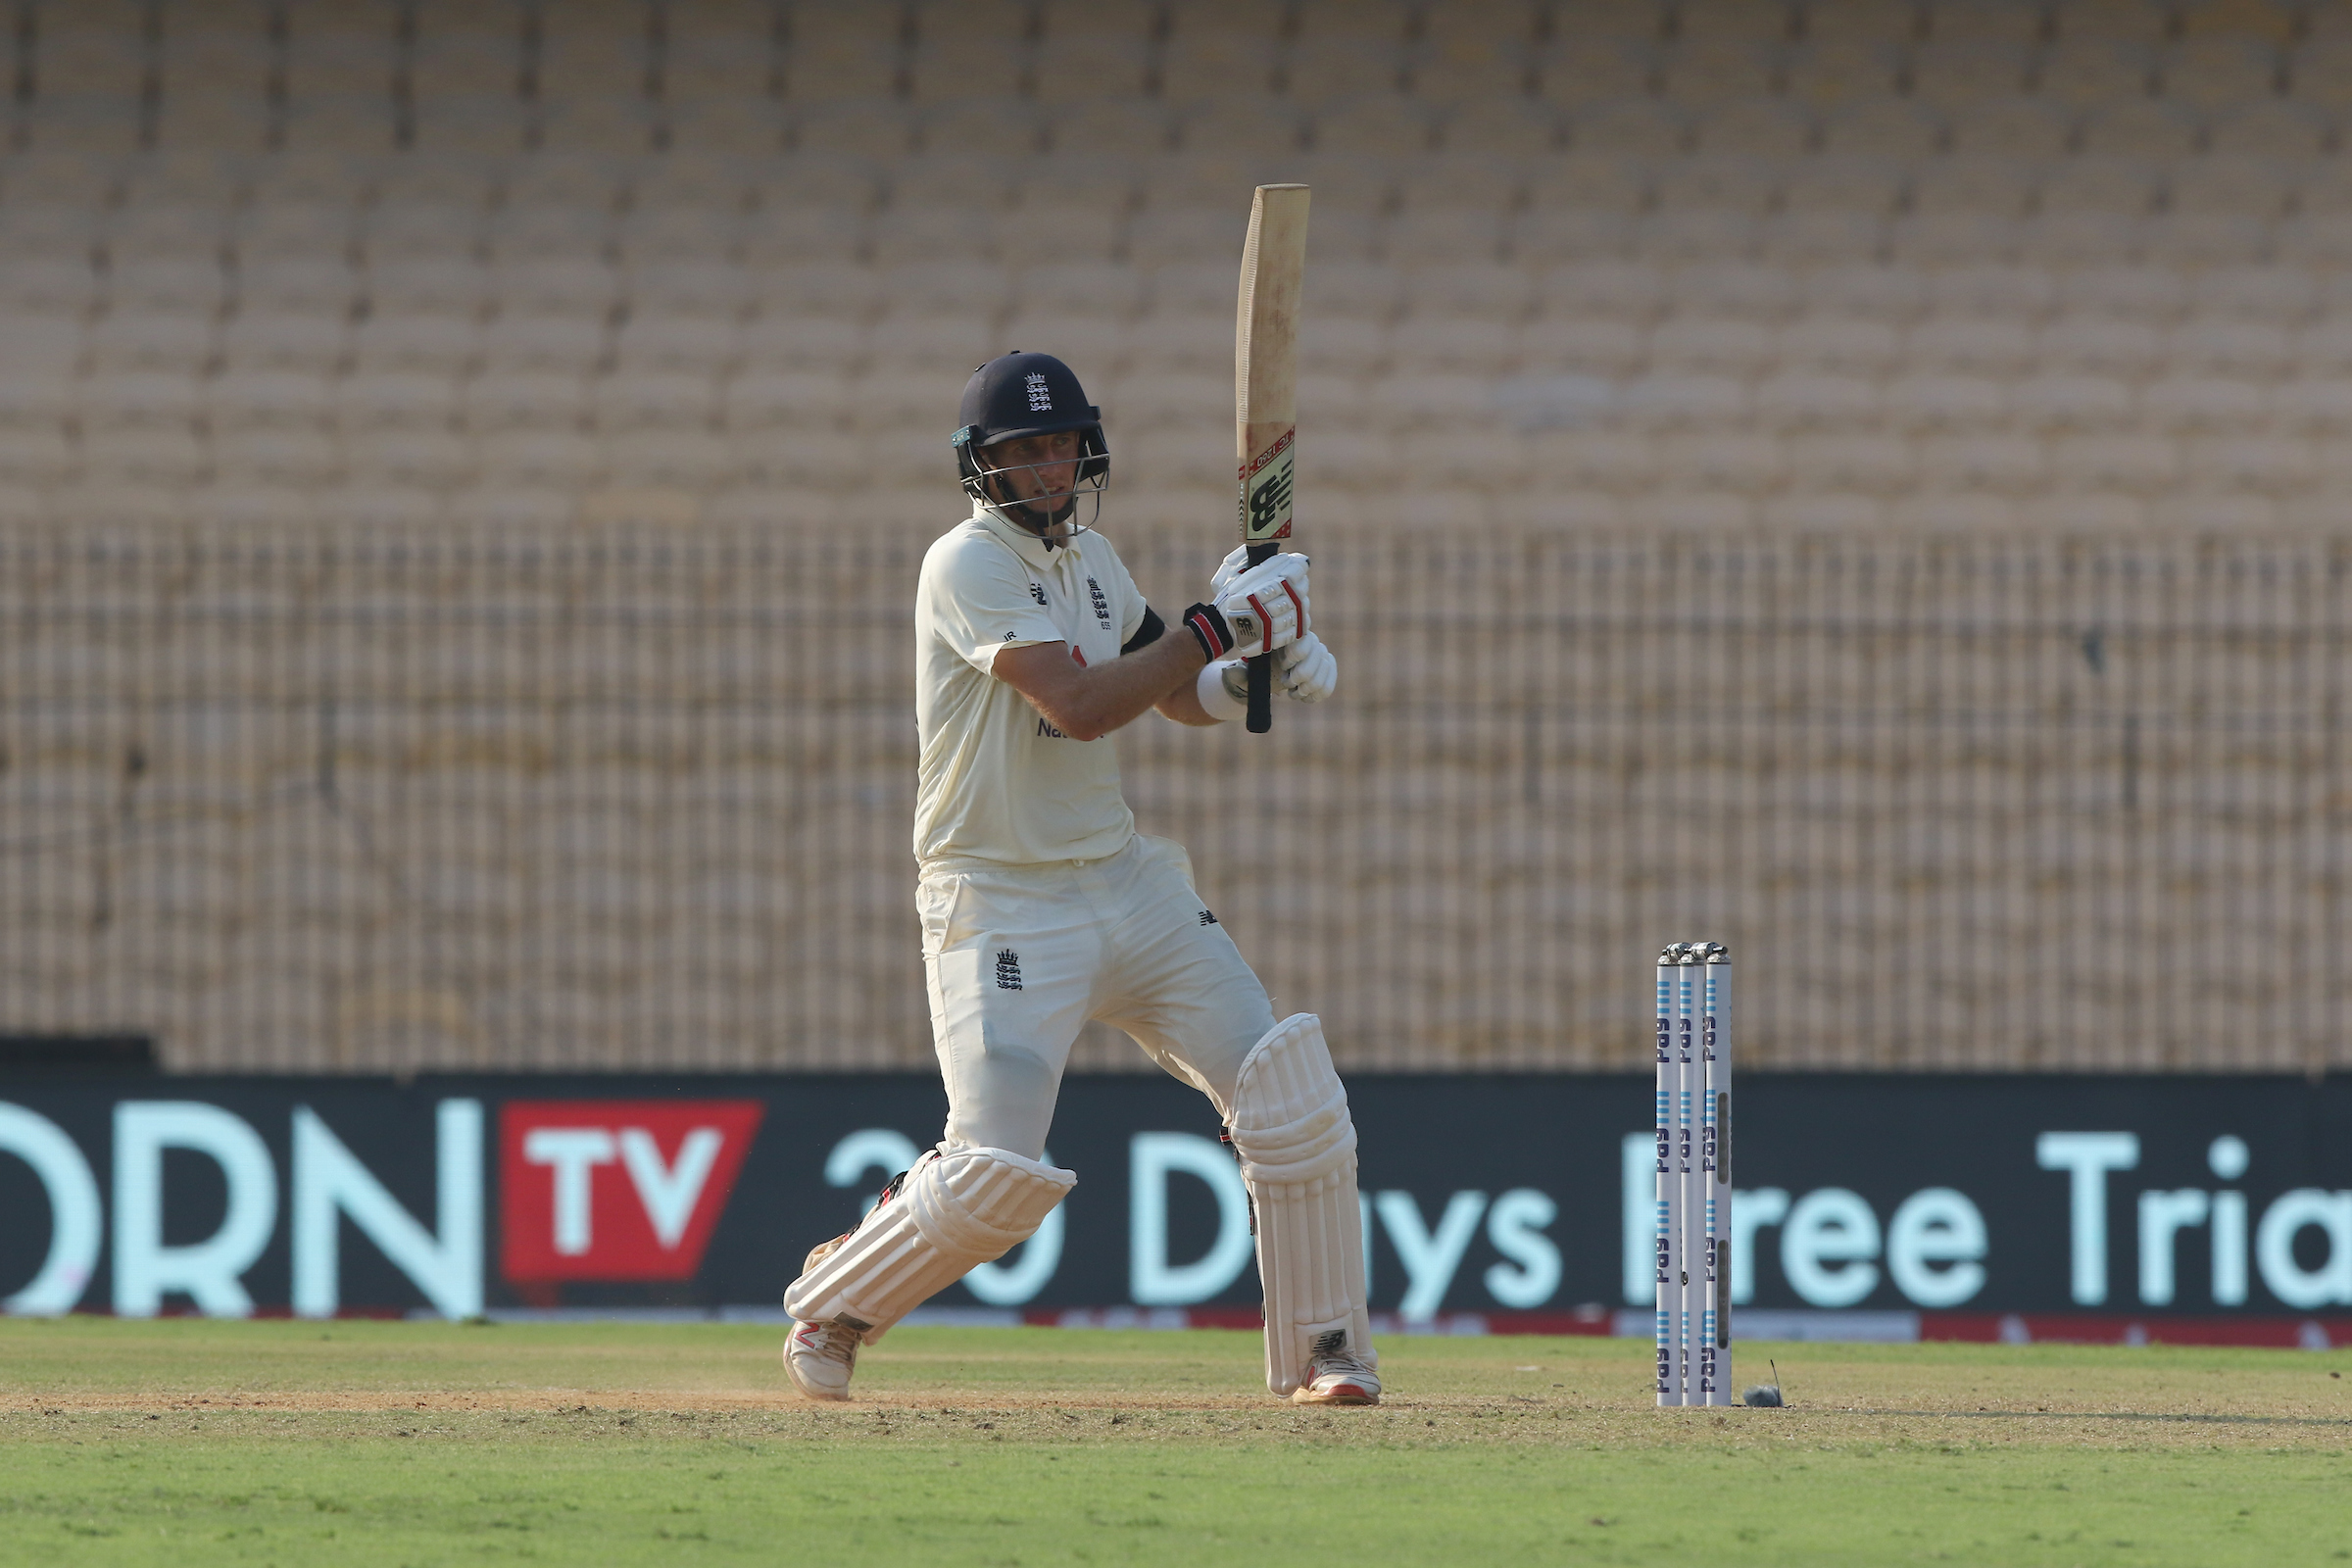 Root moves up to third in Test Rankings after Chennai double century - International Cricket Council